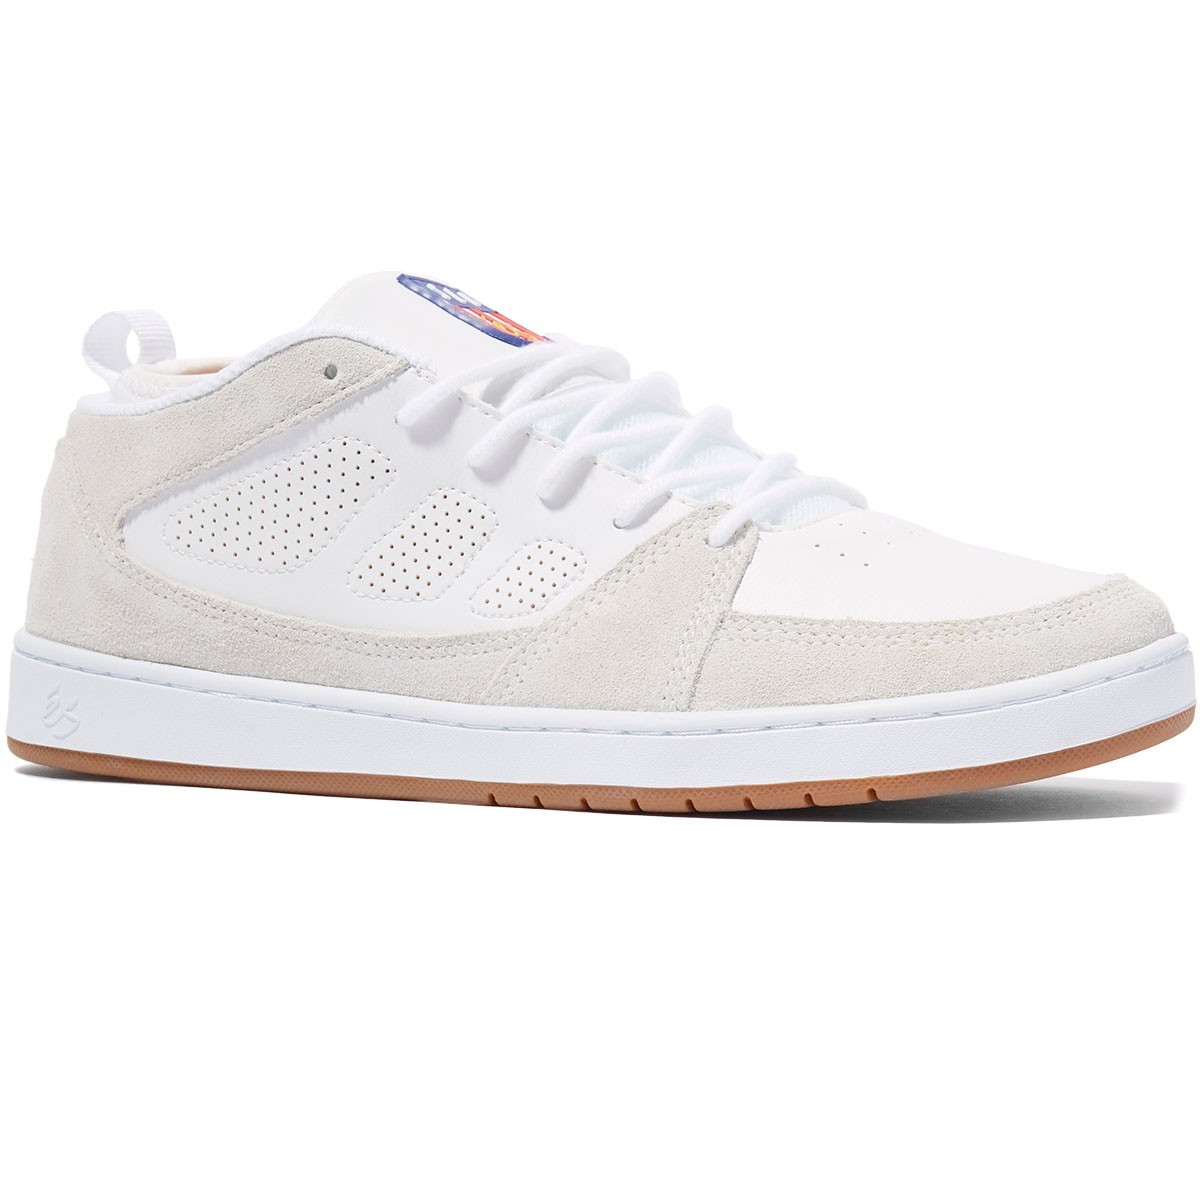 eS Shoes SLB MID White USA SIZE RRP 129 Skateboard Sneakers Salvador Barbier free post